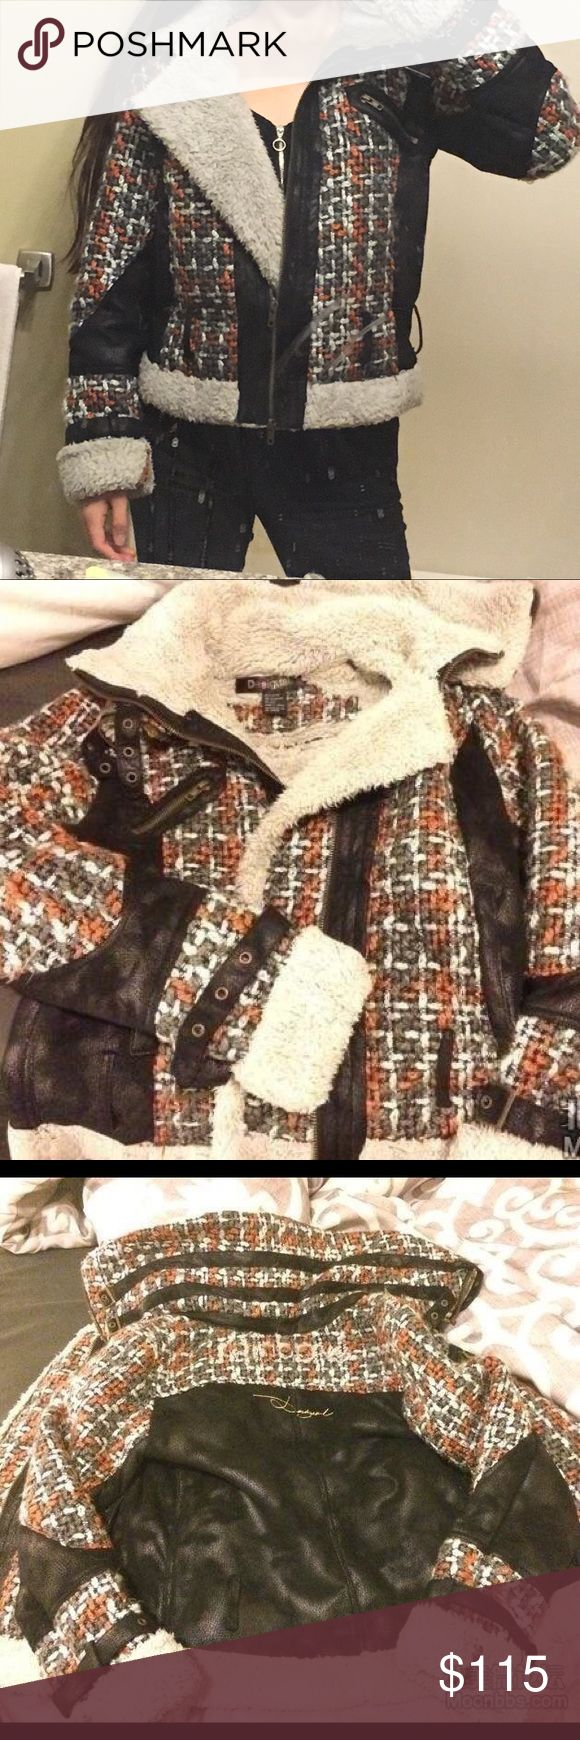 Desigual women's winter jacket faux fur and Suede Super thick and comfy faux fur on the inside of the jacket(including the sleeves!) and Suede on the outside! Super stylish and keep you away from the cold! Great condition, very clean! Desigual Jackets & Coats Puffers